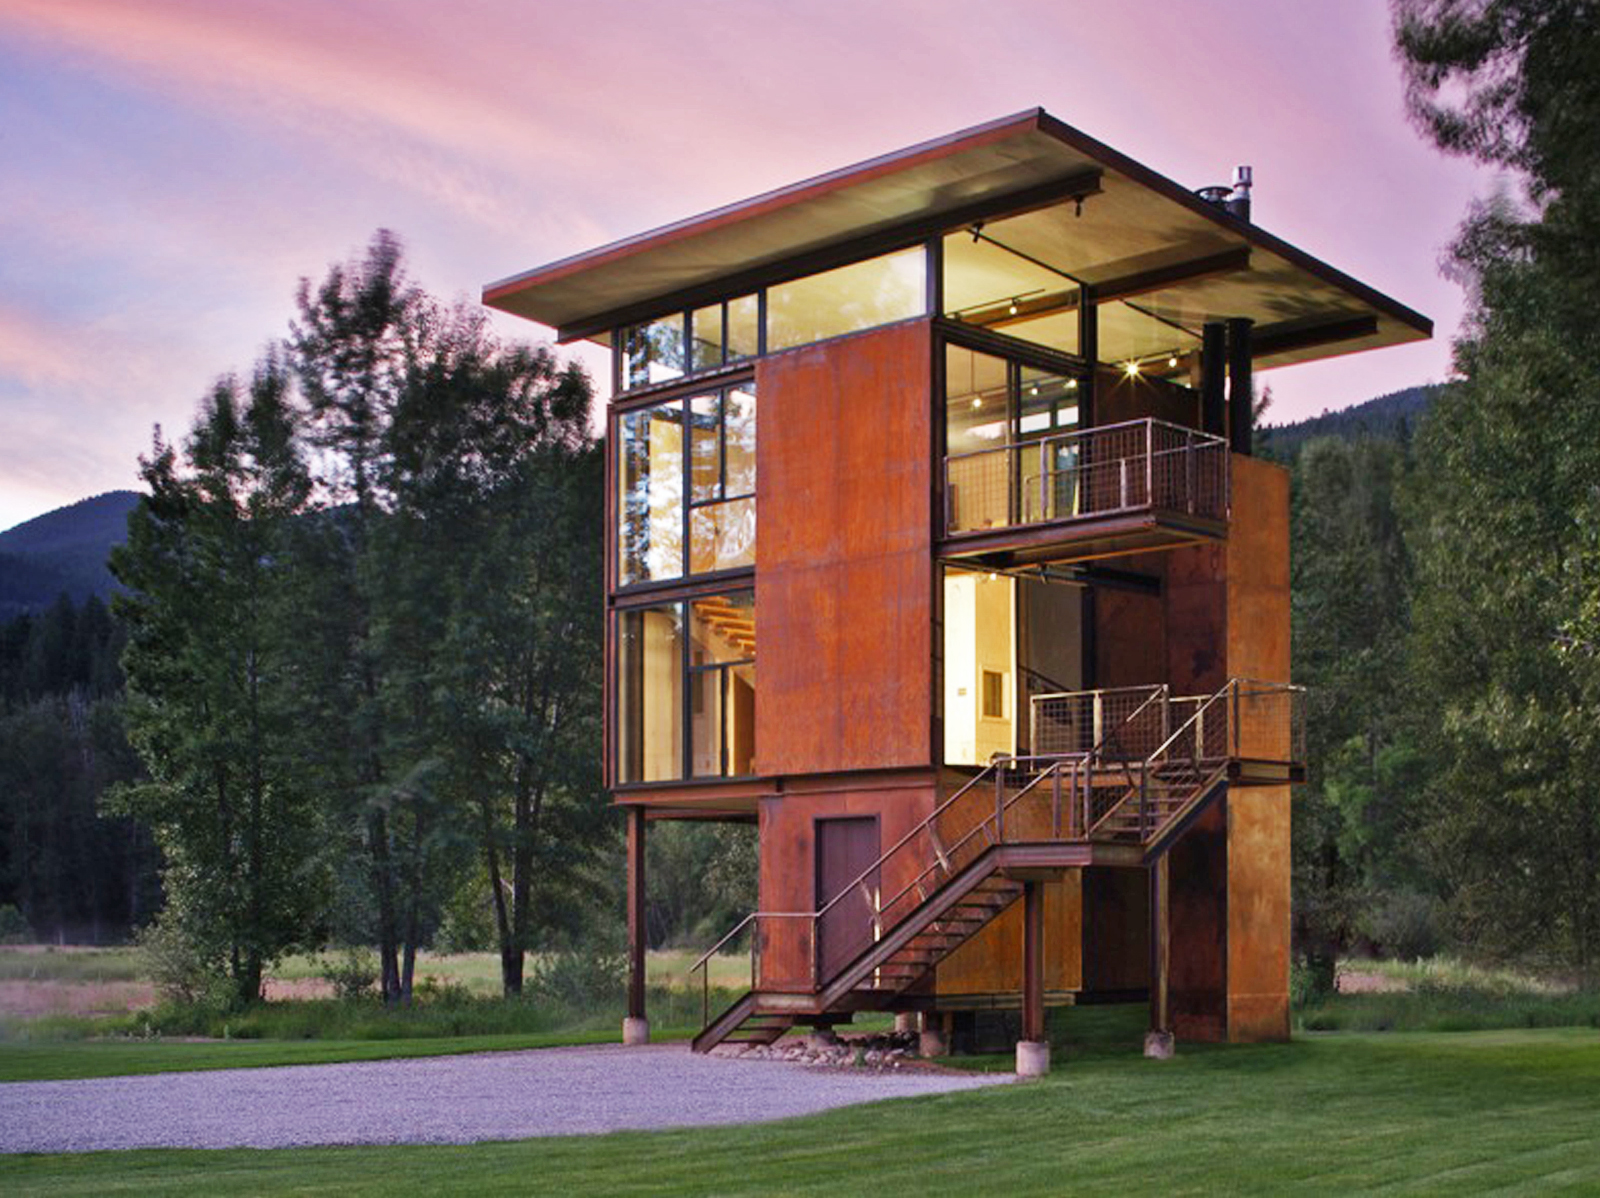 Delta Shelter, designed by Tom Kundig. Photo by Tim Bies, Olson Kundig Architects.